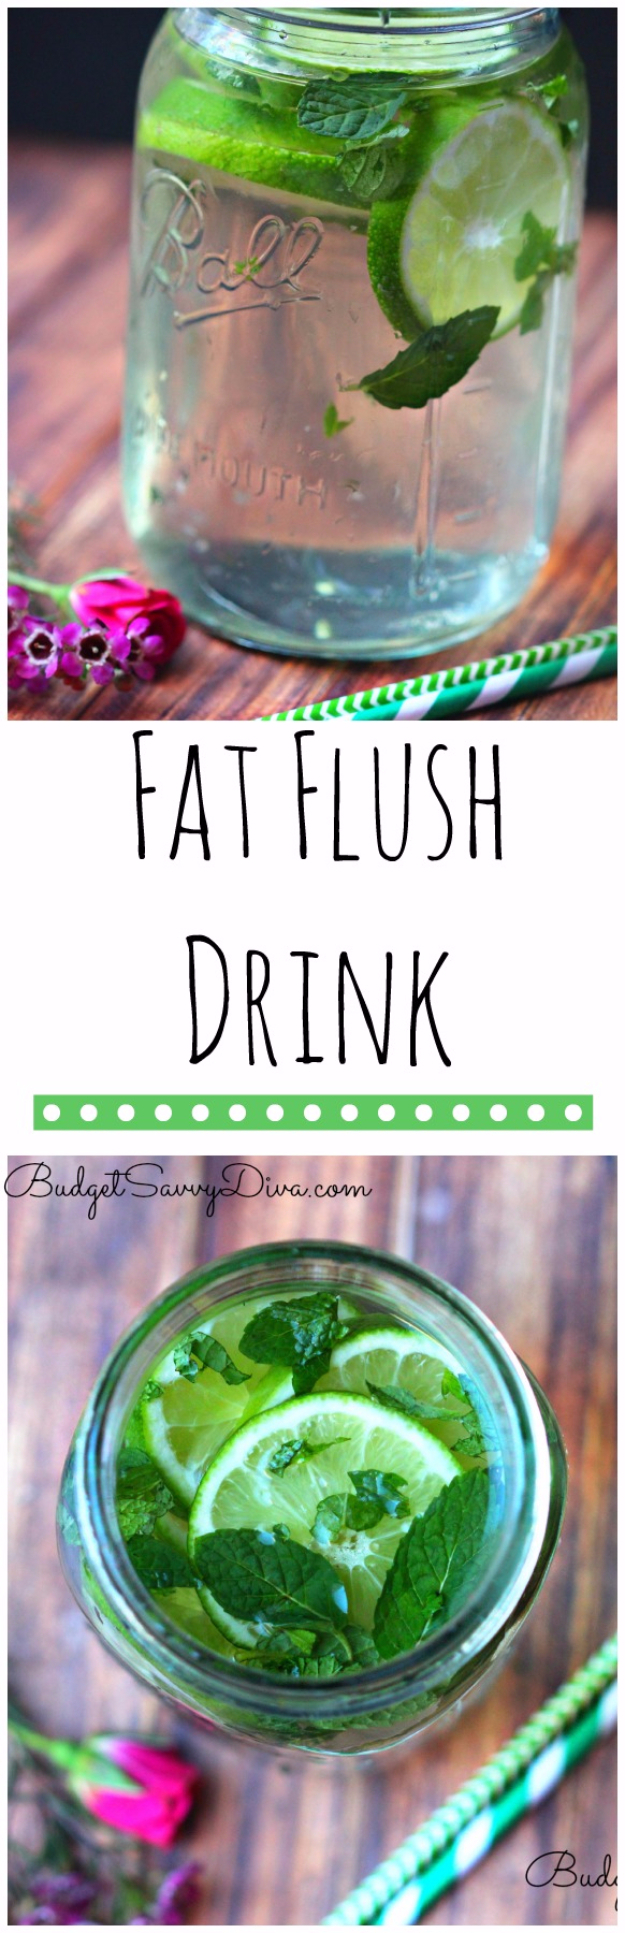 Best DIY Hacks for The New Year - Drink Green Tea To Flush Fat - Easy Organizing and Home Improvement Ideas - Tips and Tricks for Quick DIY Ideas to Simplify Life - Step by Step Hack Tutorials for Genuis Ways to Make Quick Things Easier http://diyjoy.com/best-diy-hacks